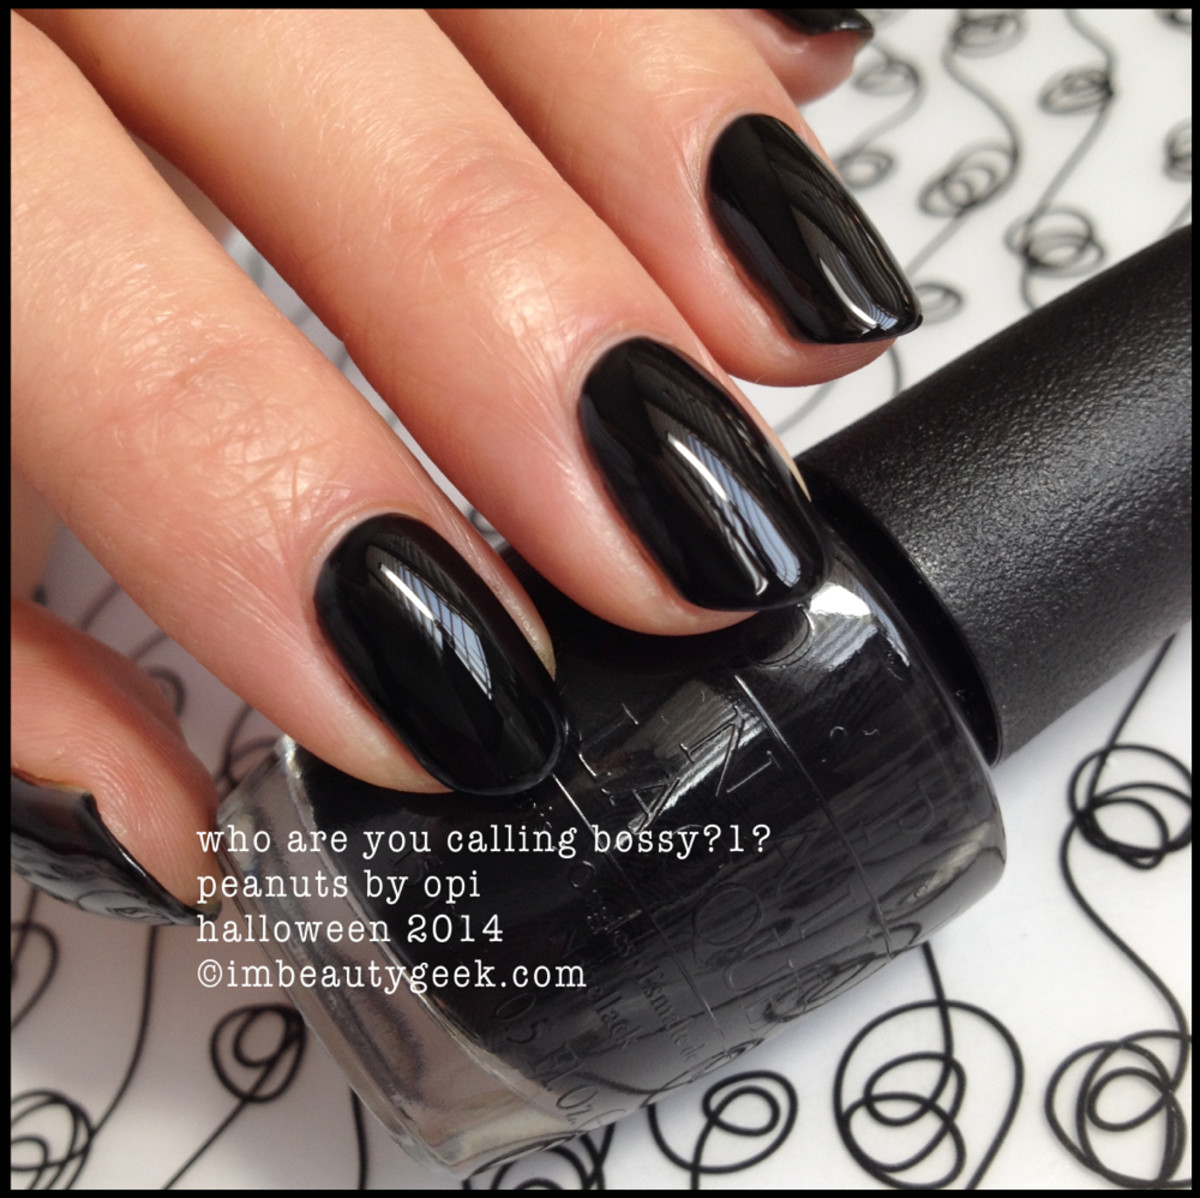 OPI Who Are You Calling Bossy Peanuts by OPI Halloween 2014